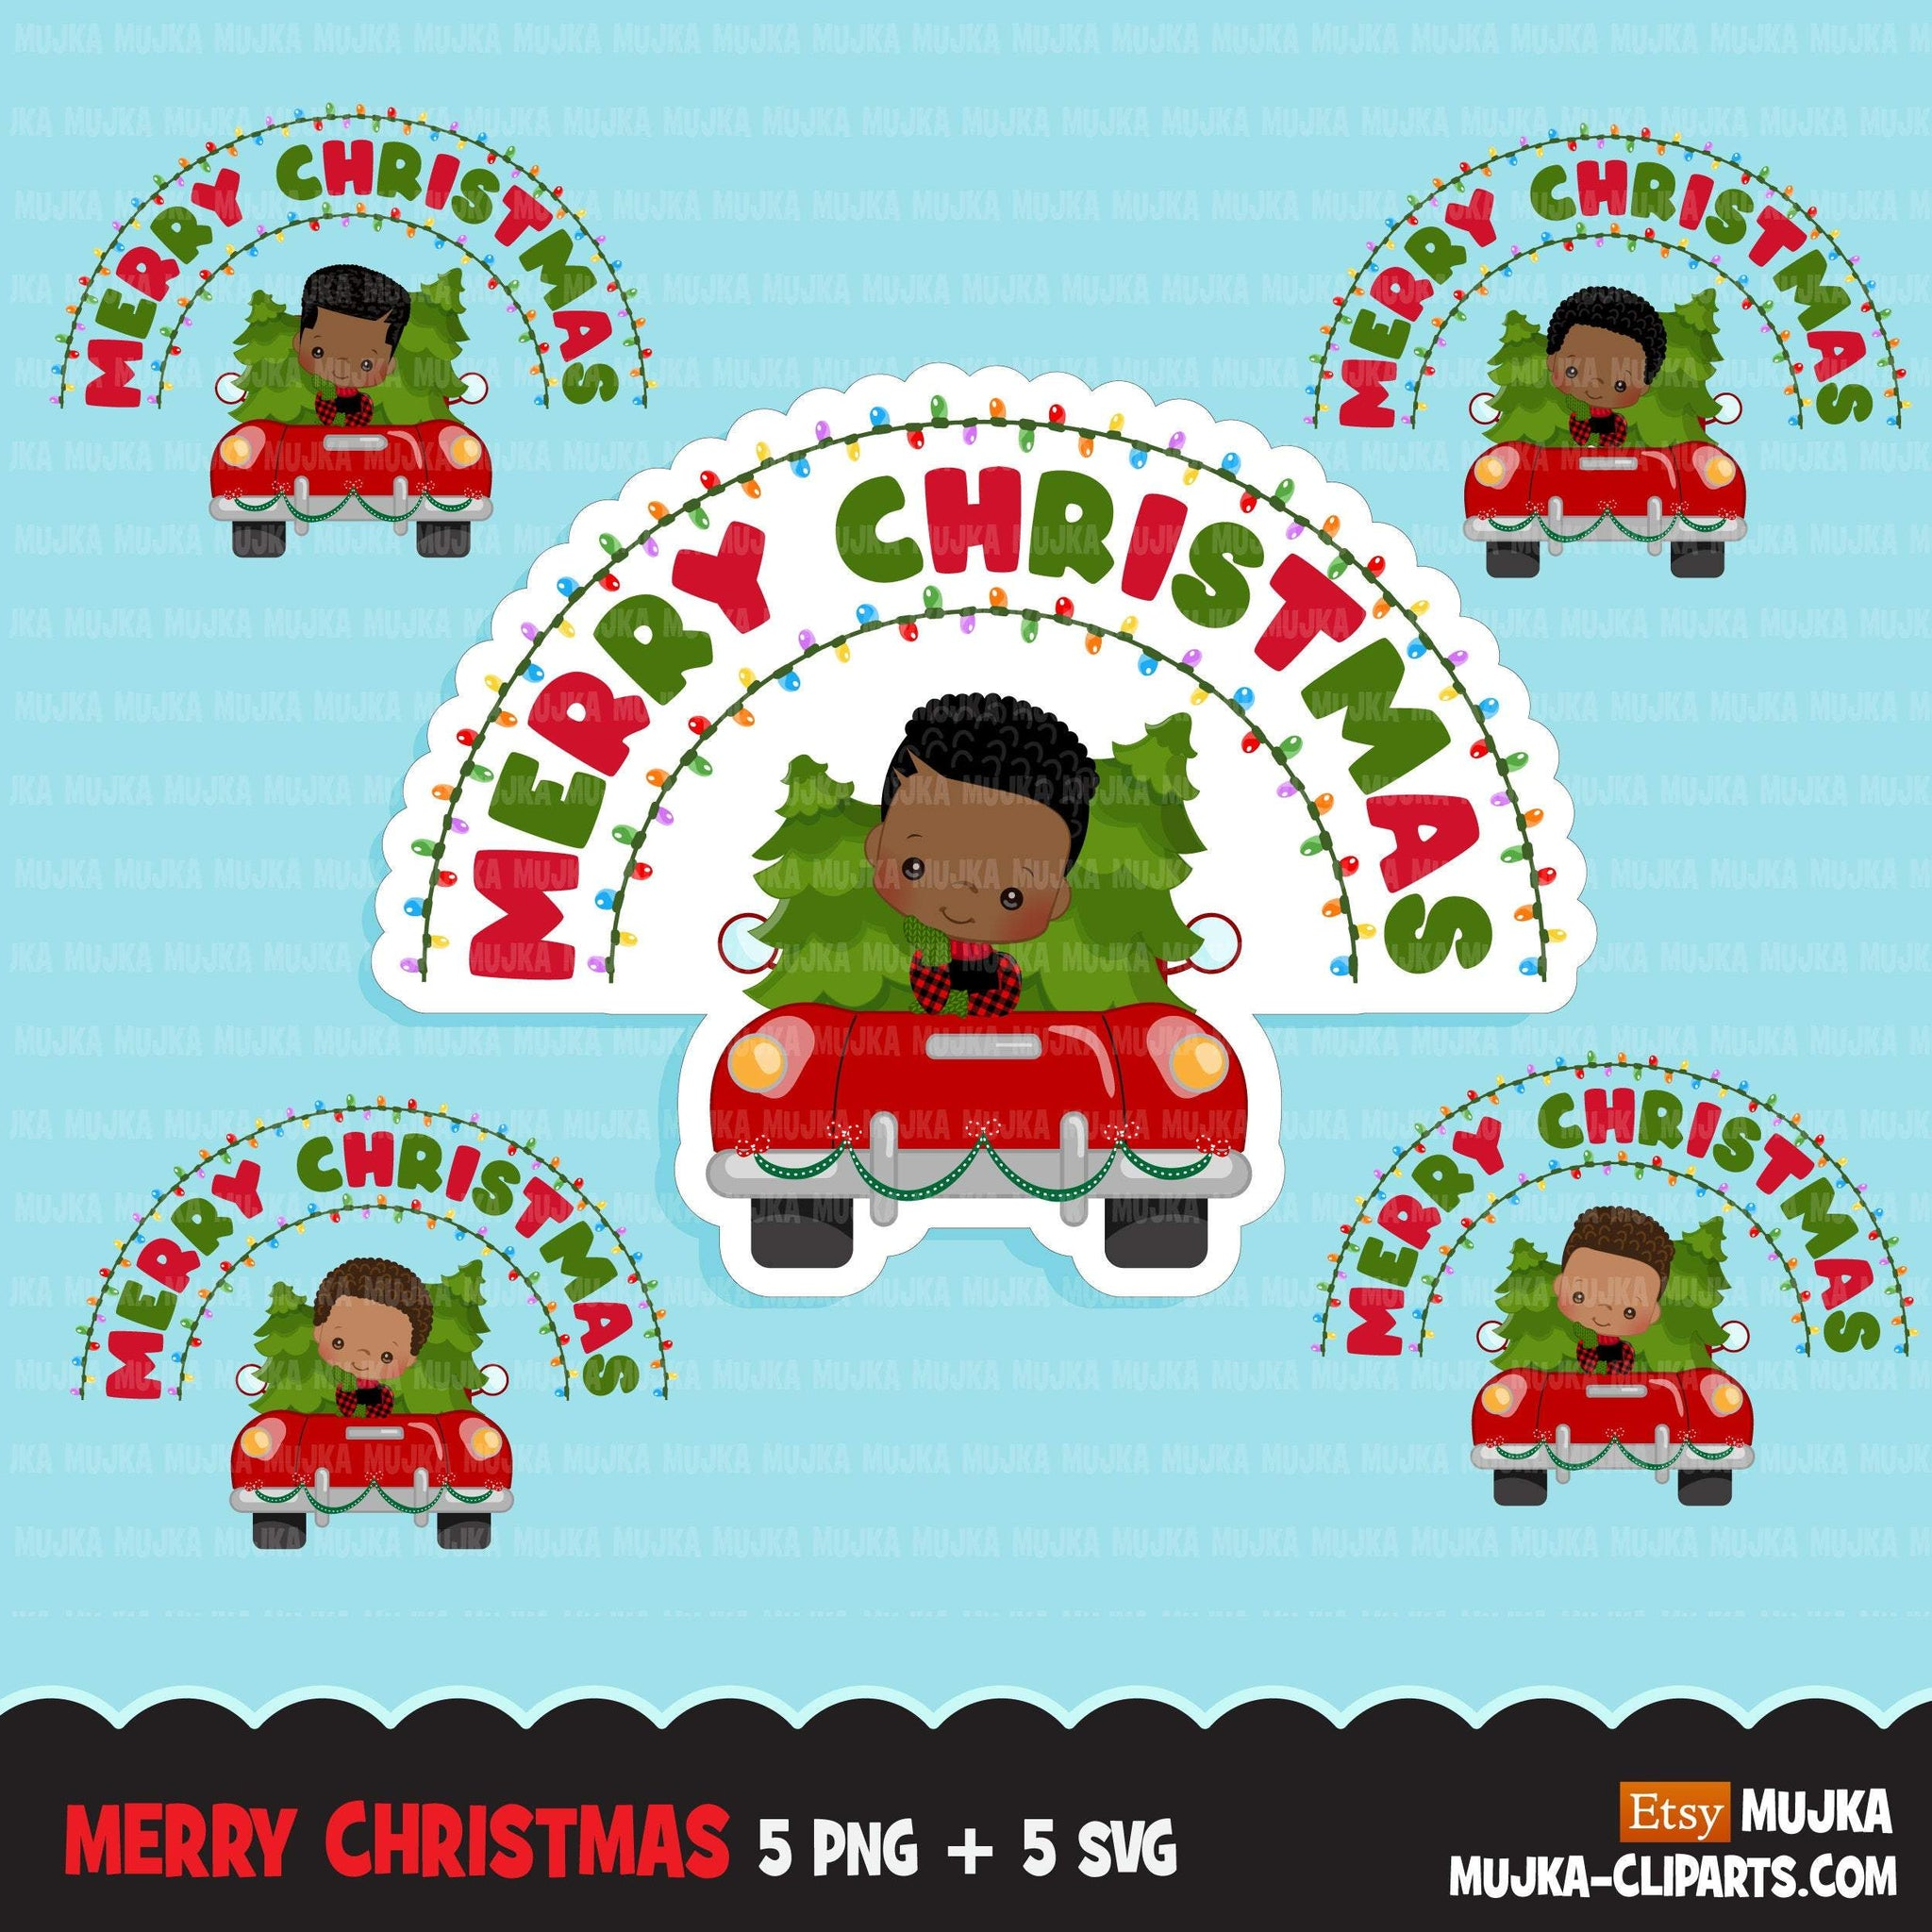 Christmas Svg Png digital, Merry Christmas Red Truck HTV sublimation image transfer clipart, t-shirt black boy